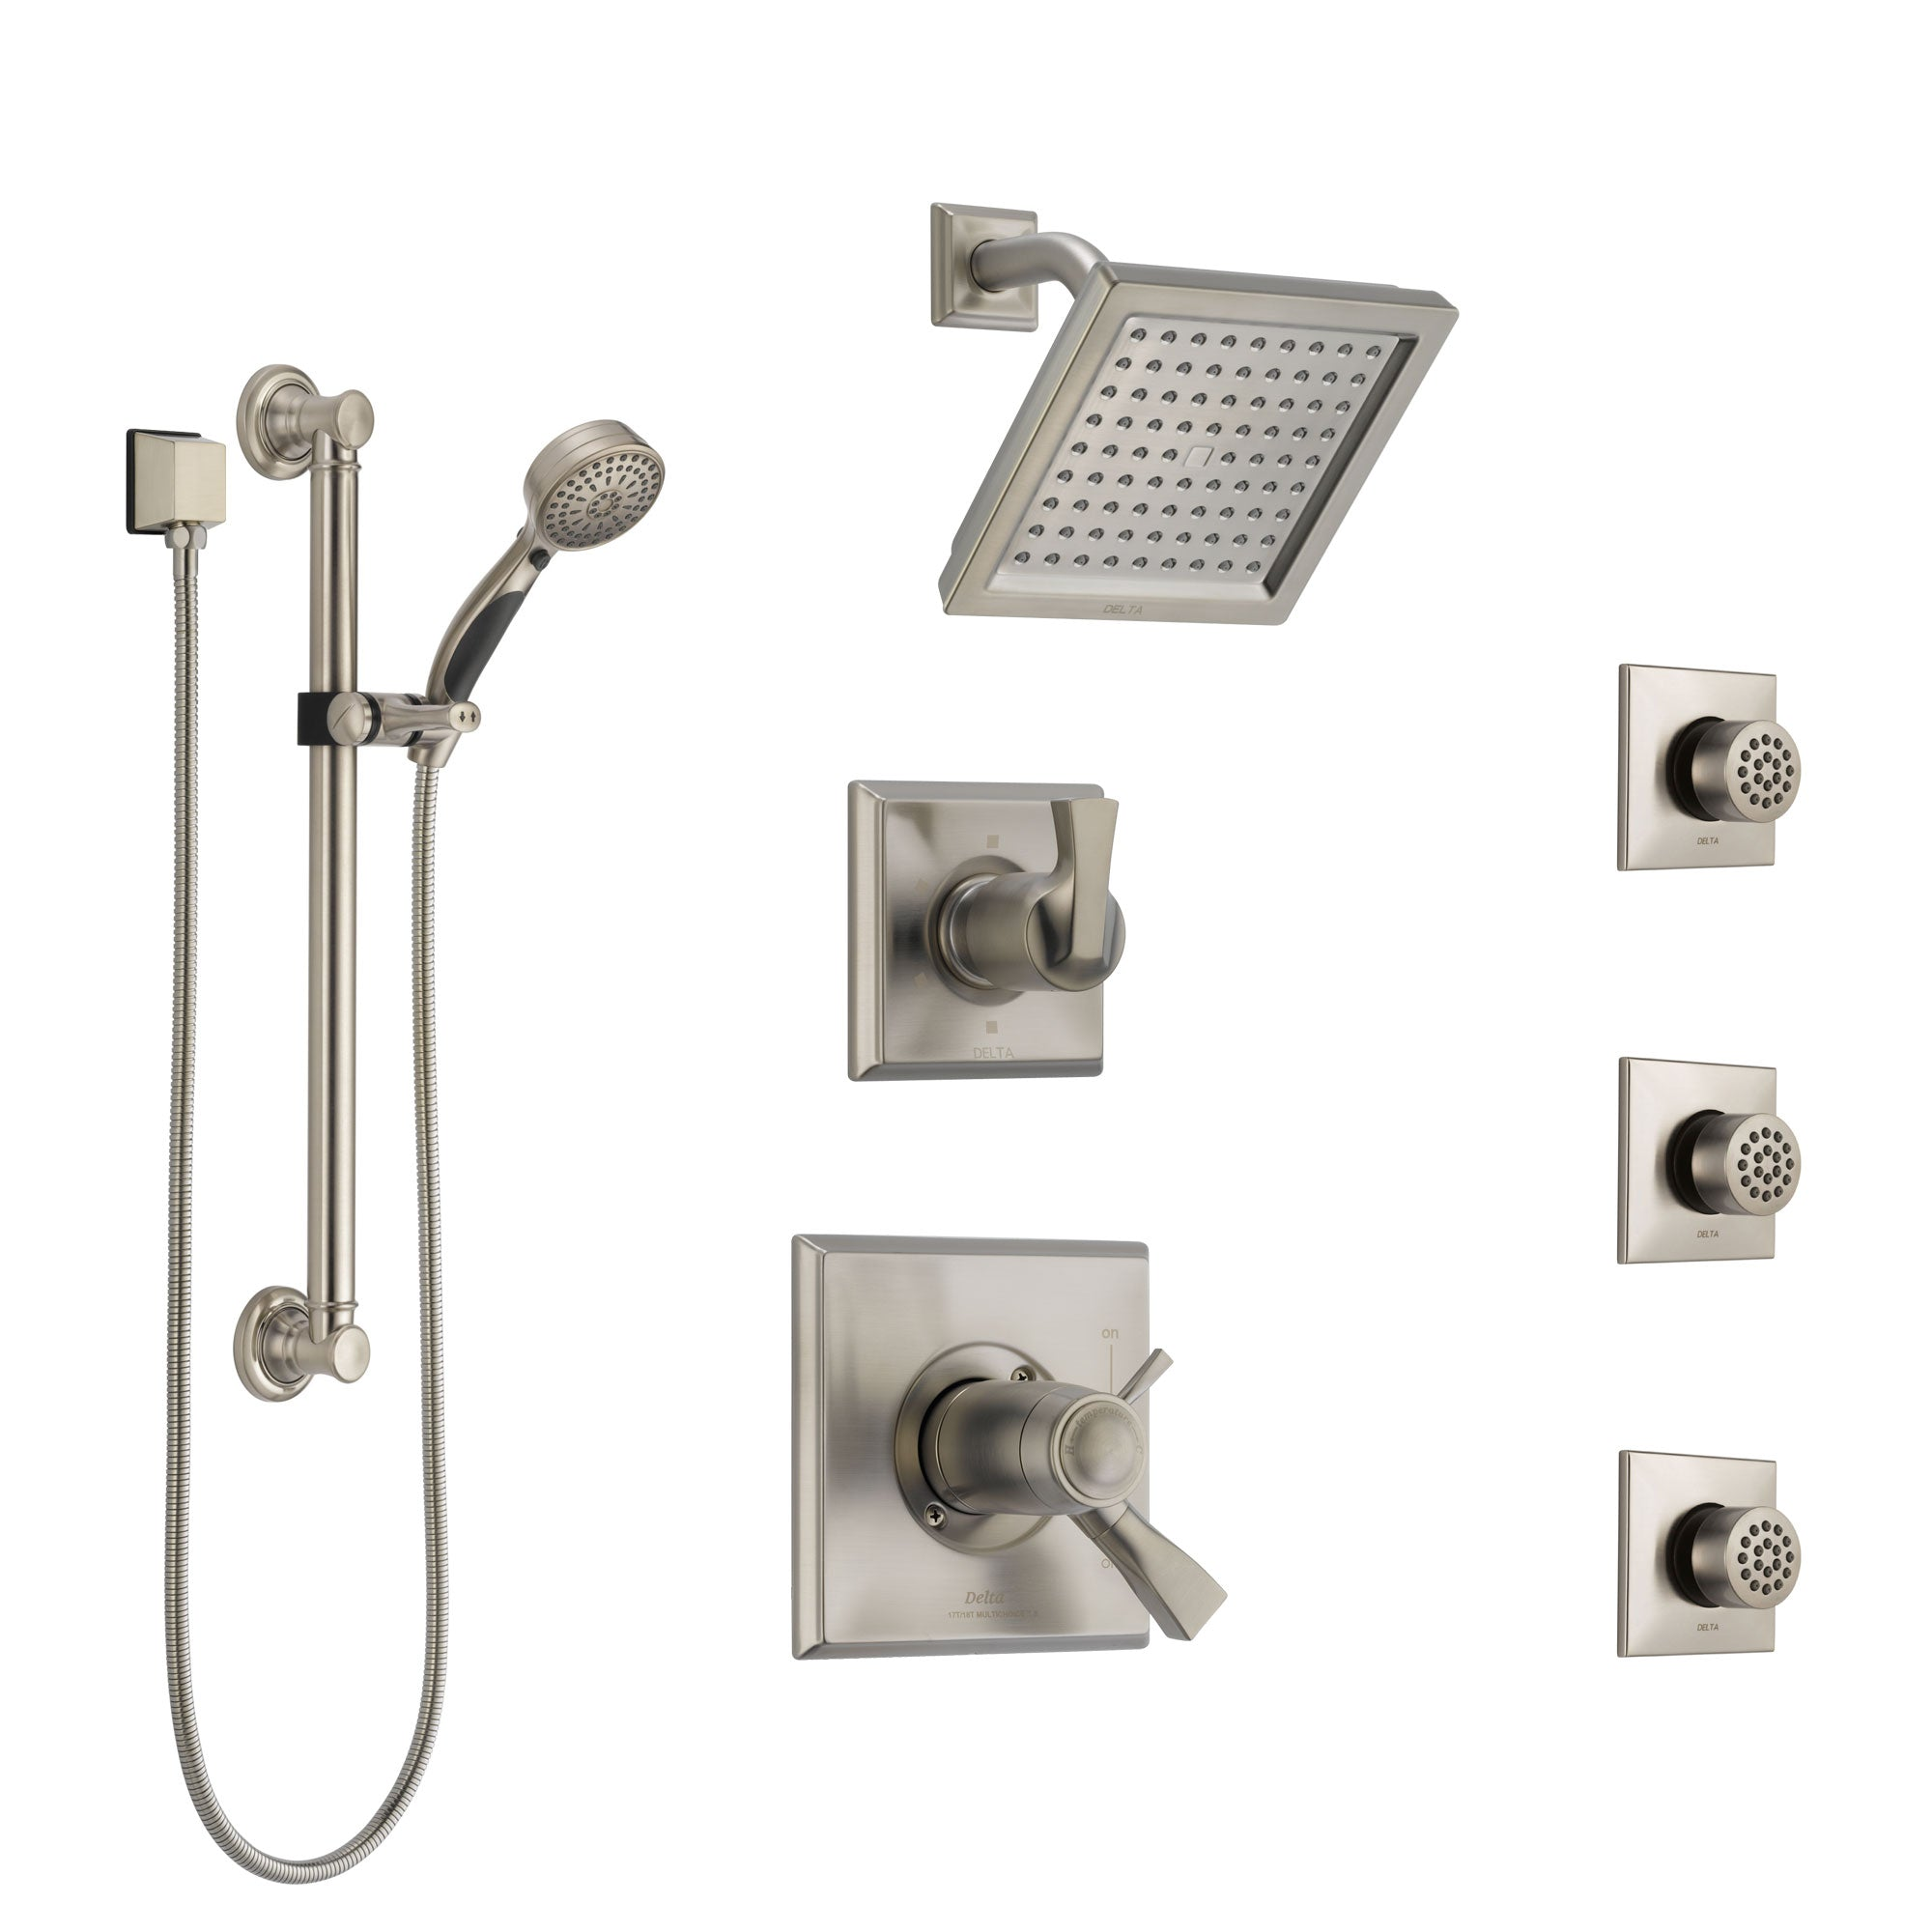 Delta Dryden Dual Thermostatic Control Stainless Steel Finish Shower System, Diverter, Showerhead, 3 Body Sprays, and Grab Bar Hand Spray SS17T2512SS2